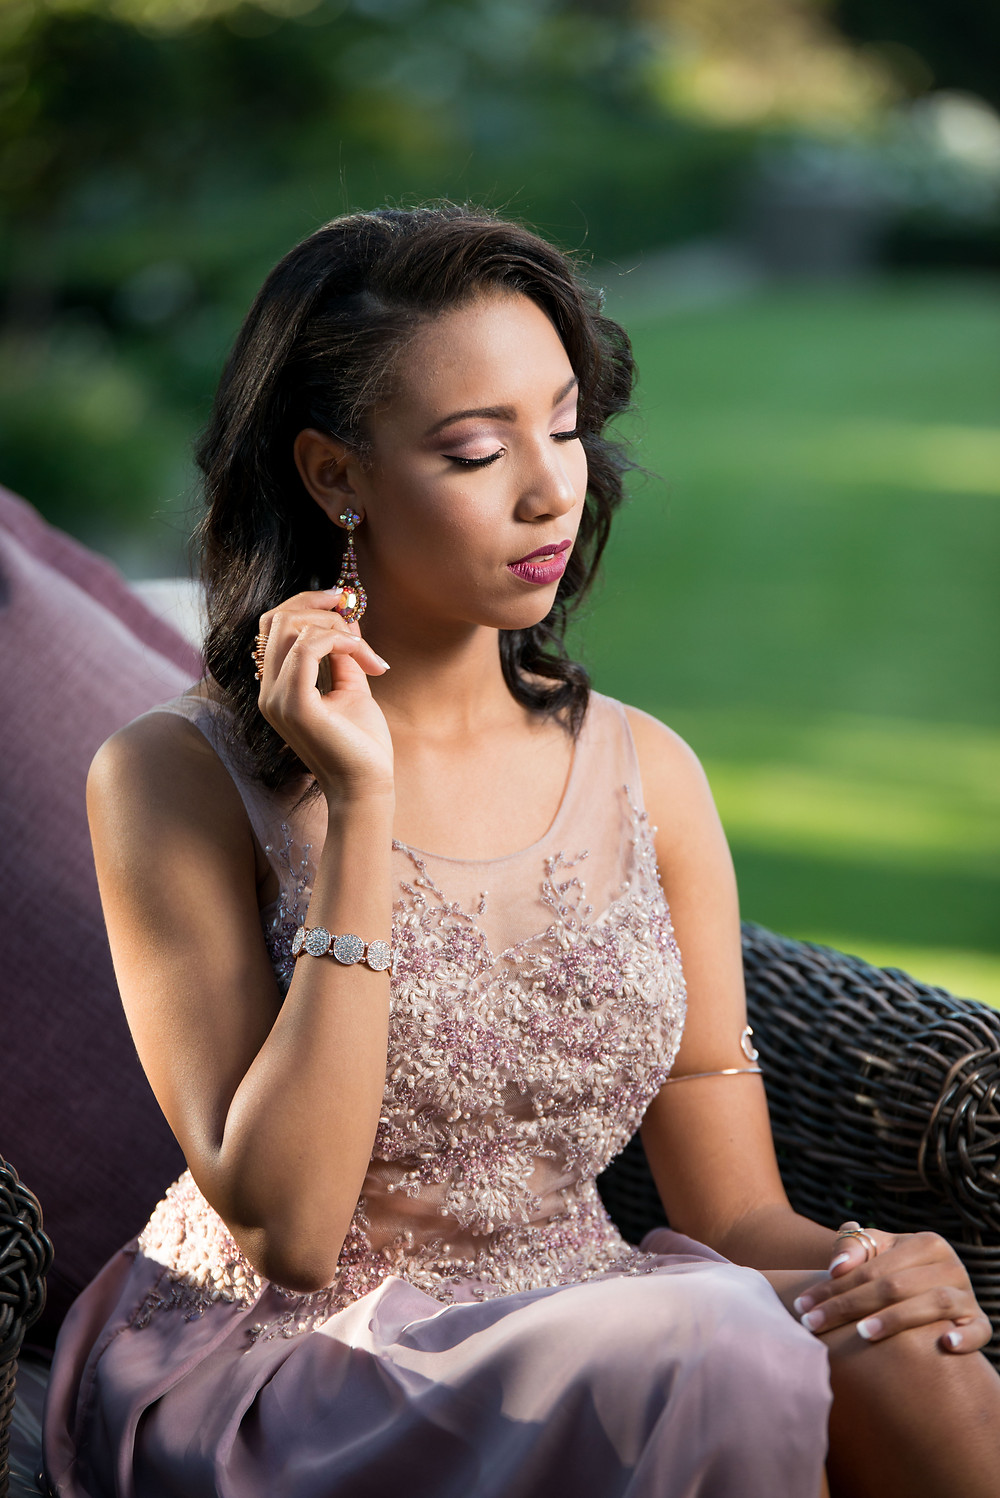 Matric farewell makeup photos